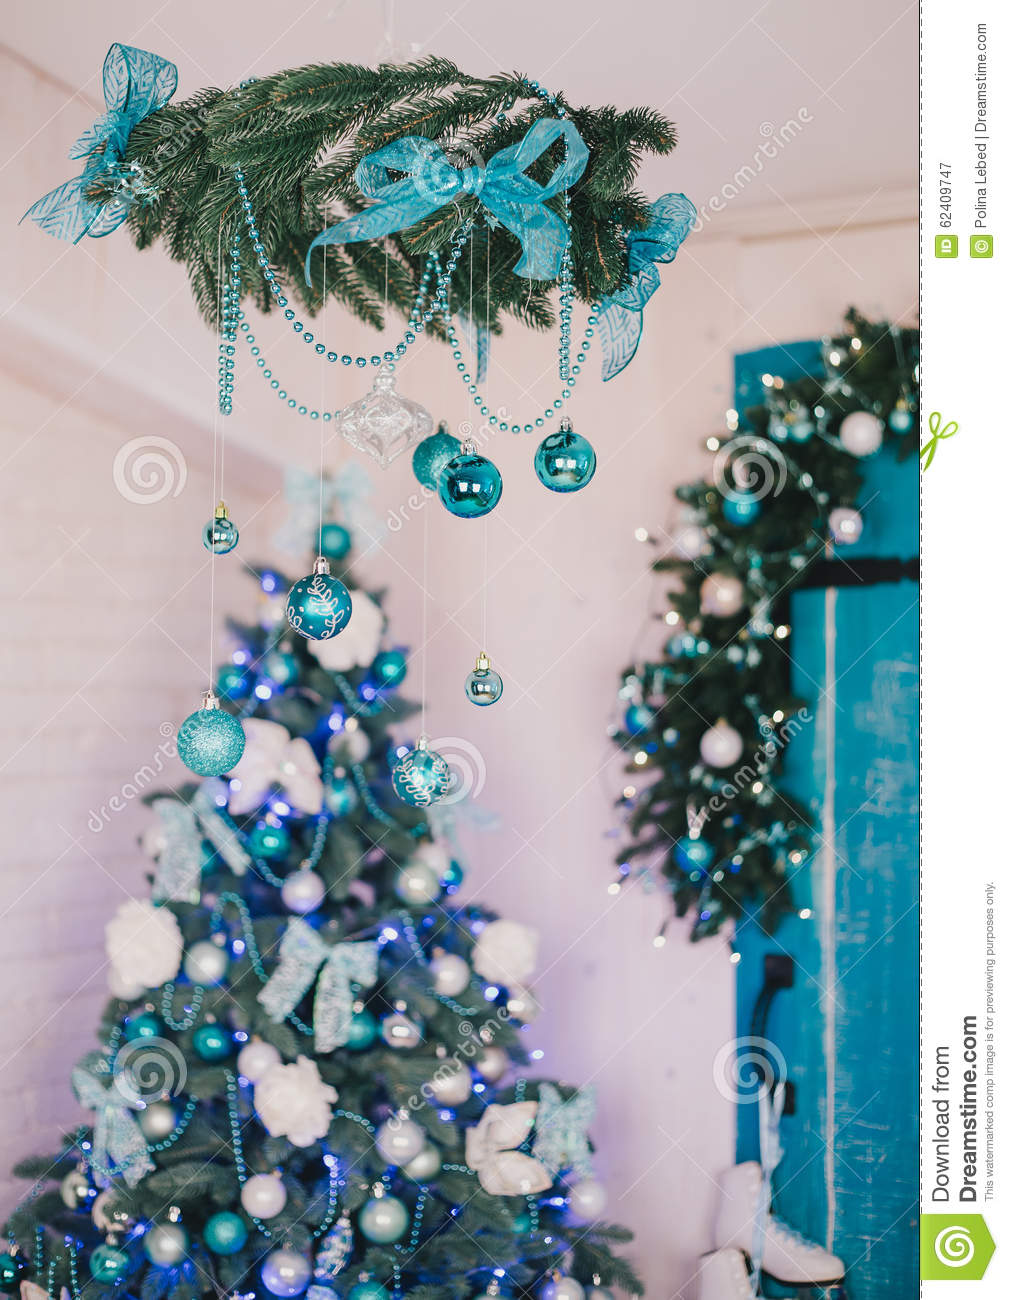 christmas tree with blue and silver details in the interior